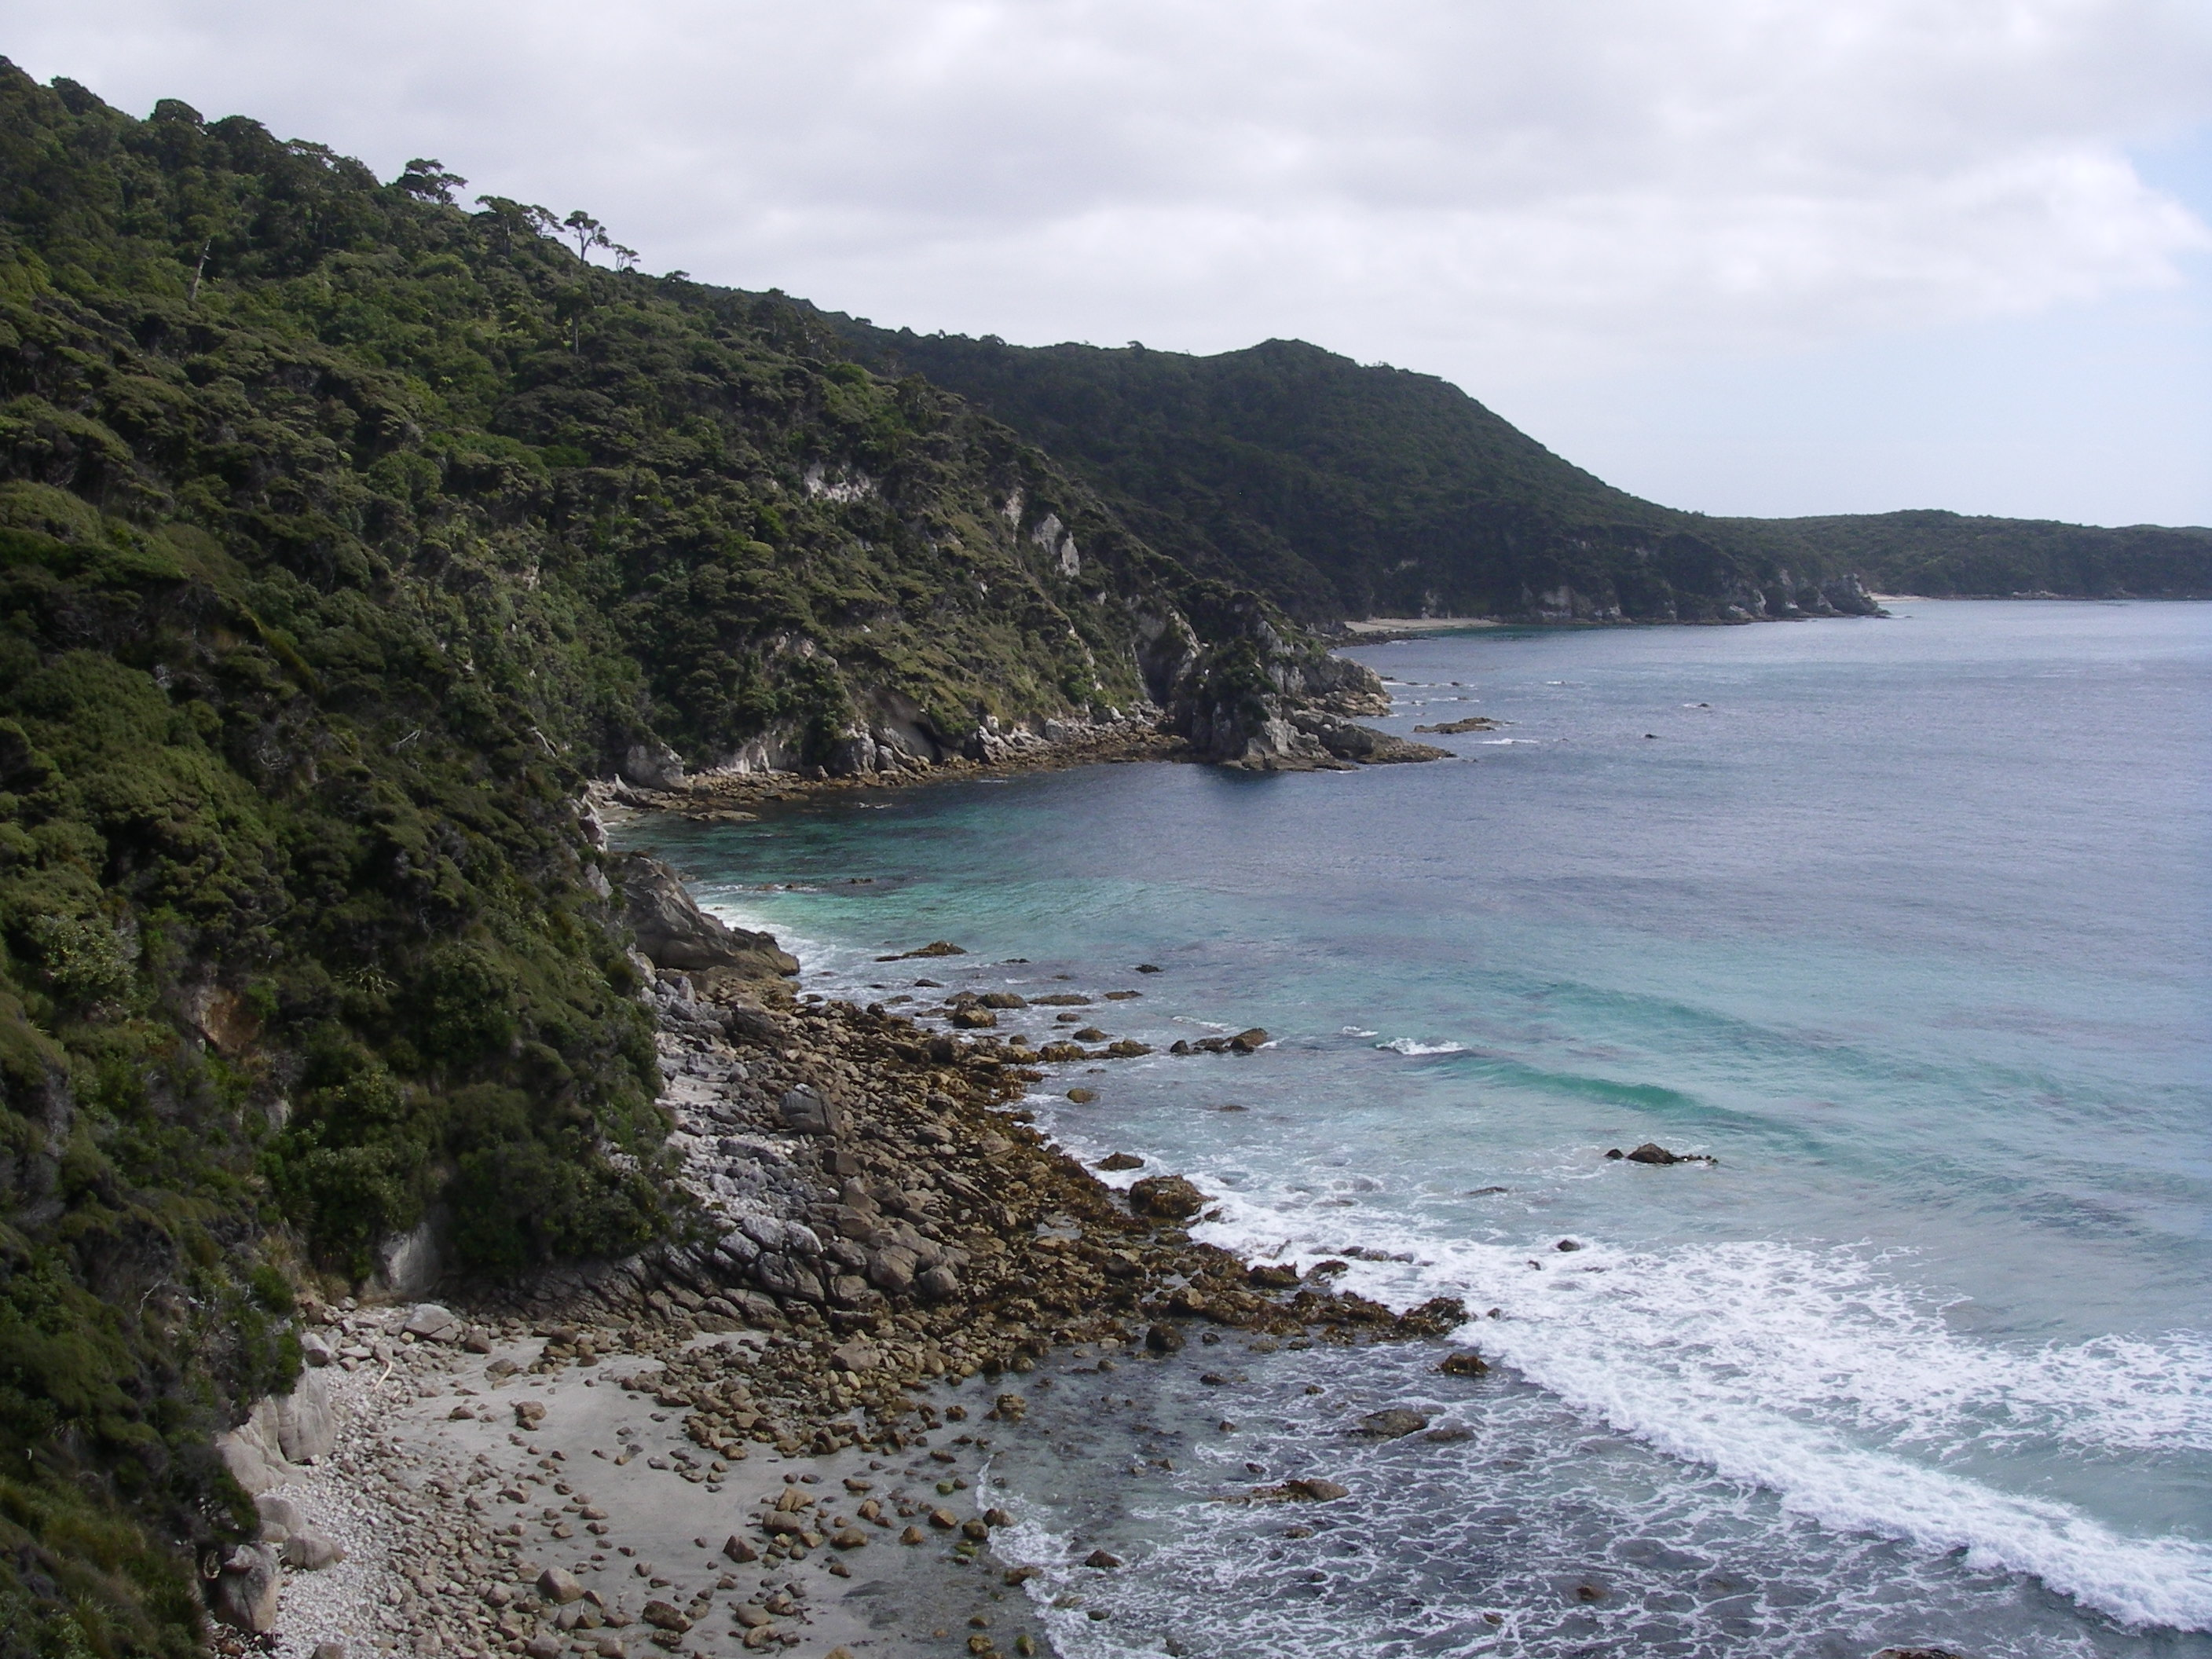 Cliffed coastline near Long Harry Hut